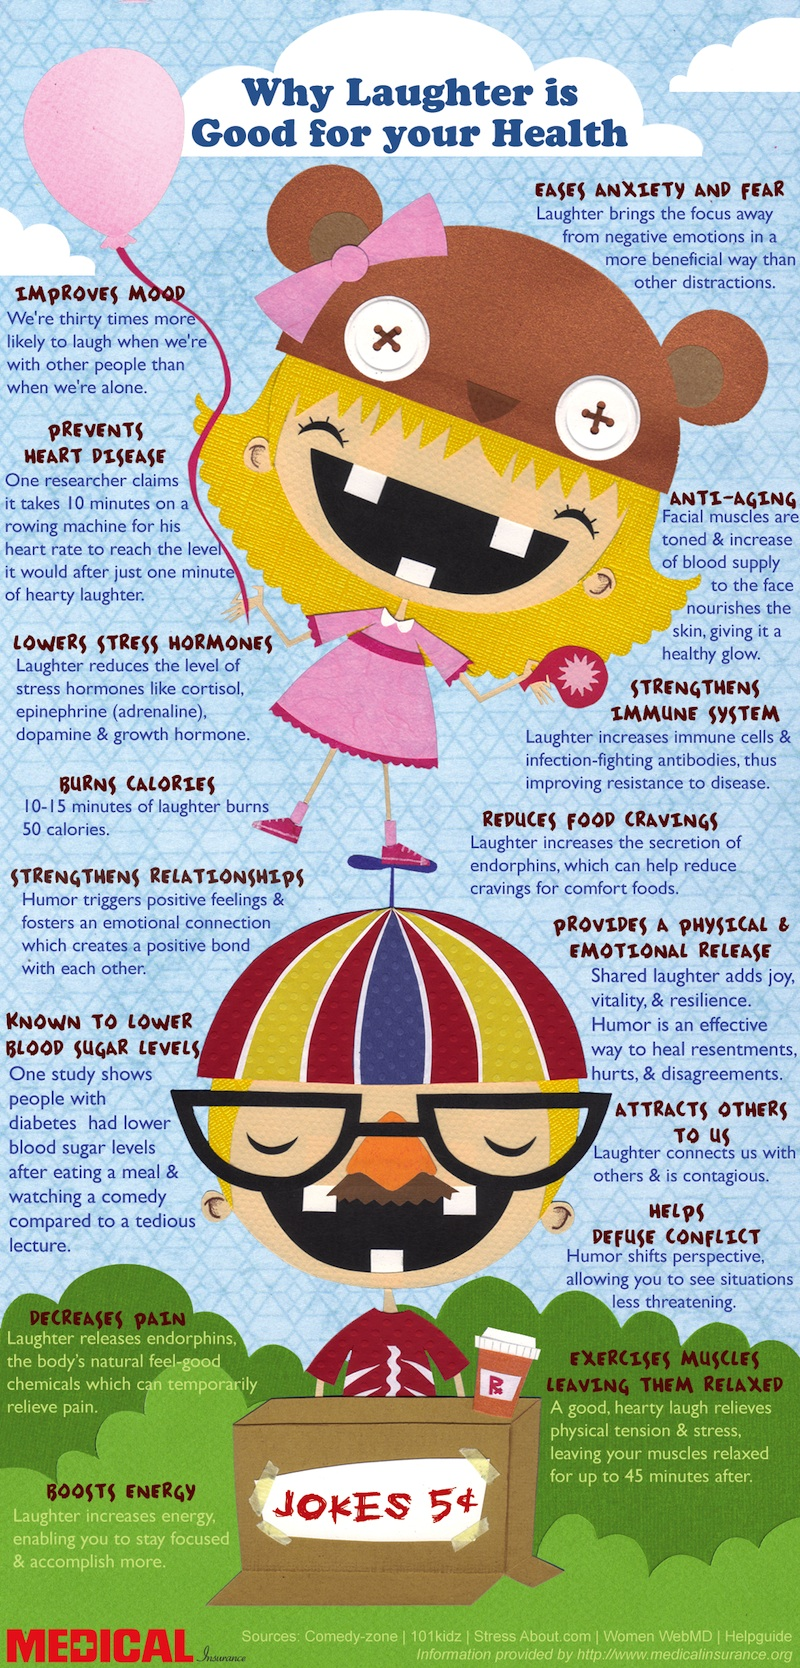 16 Benefits Of Laughter Infographic